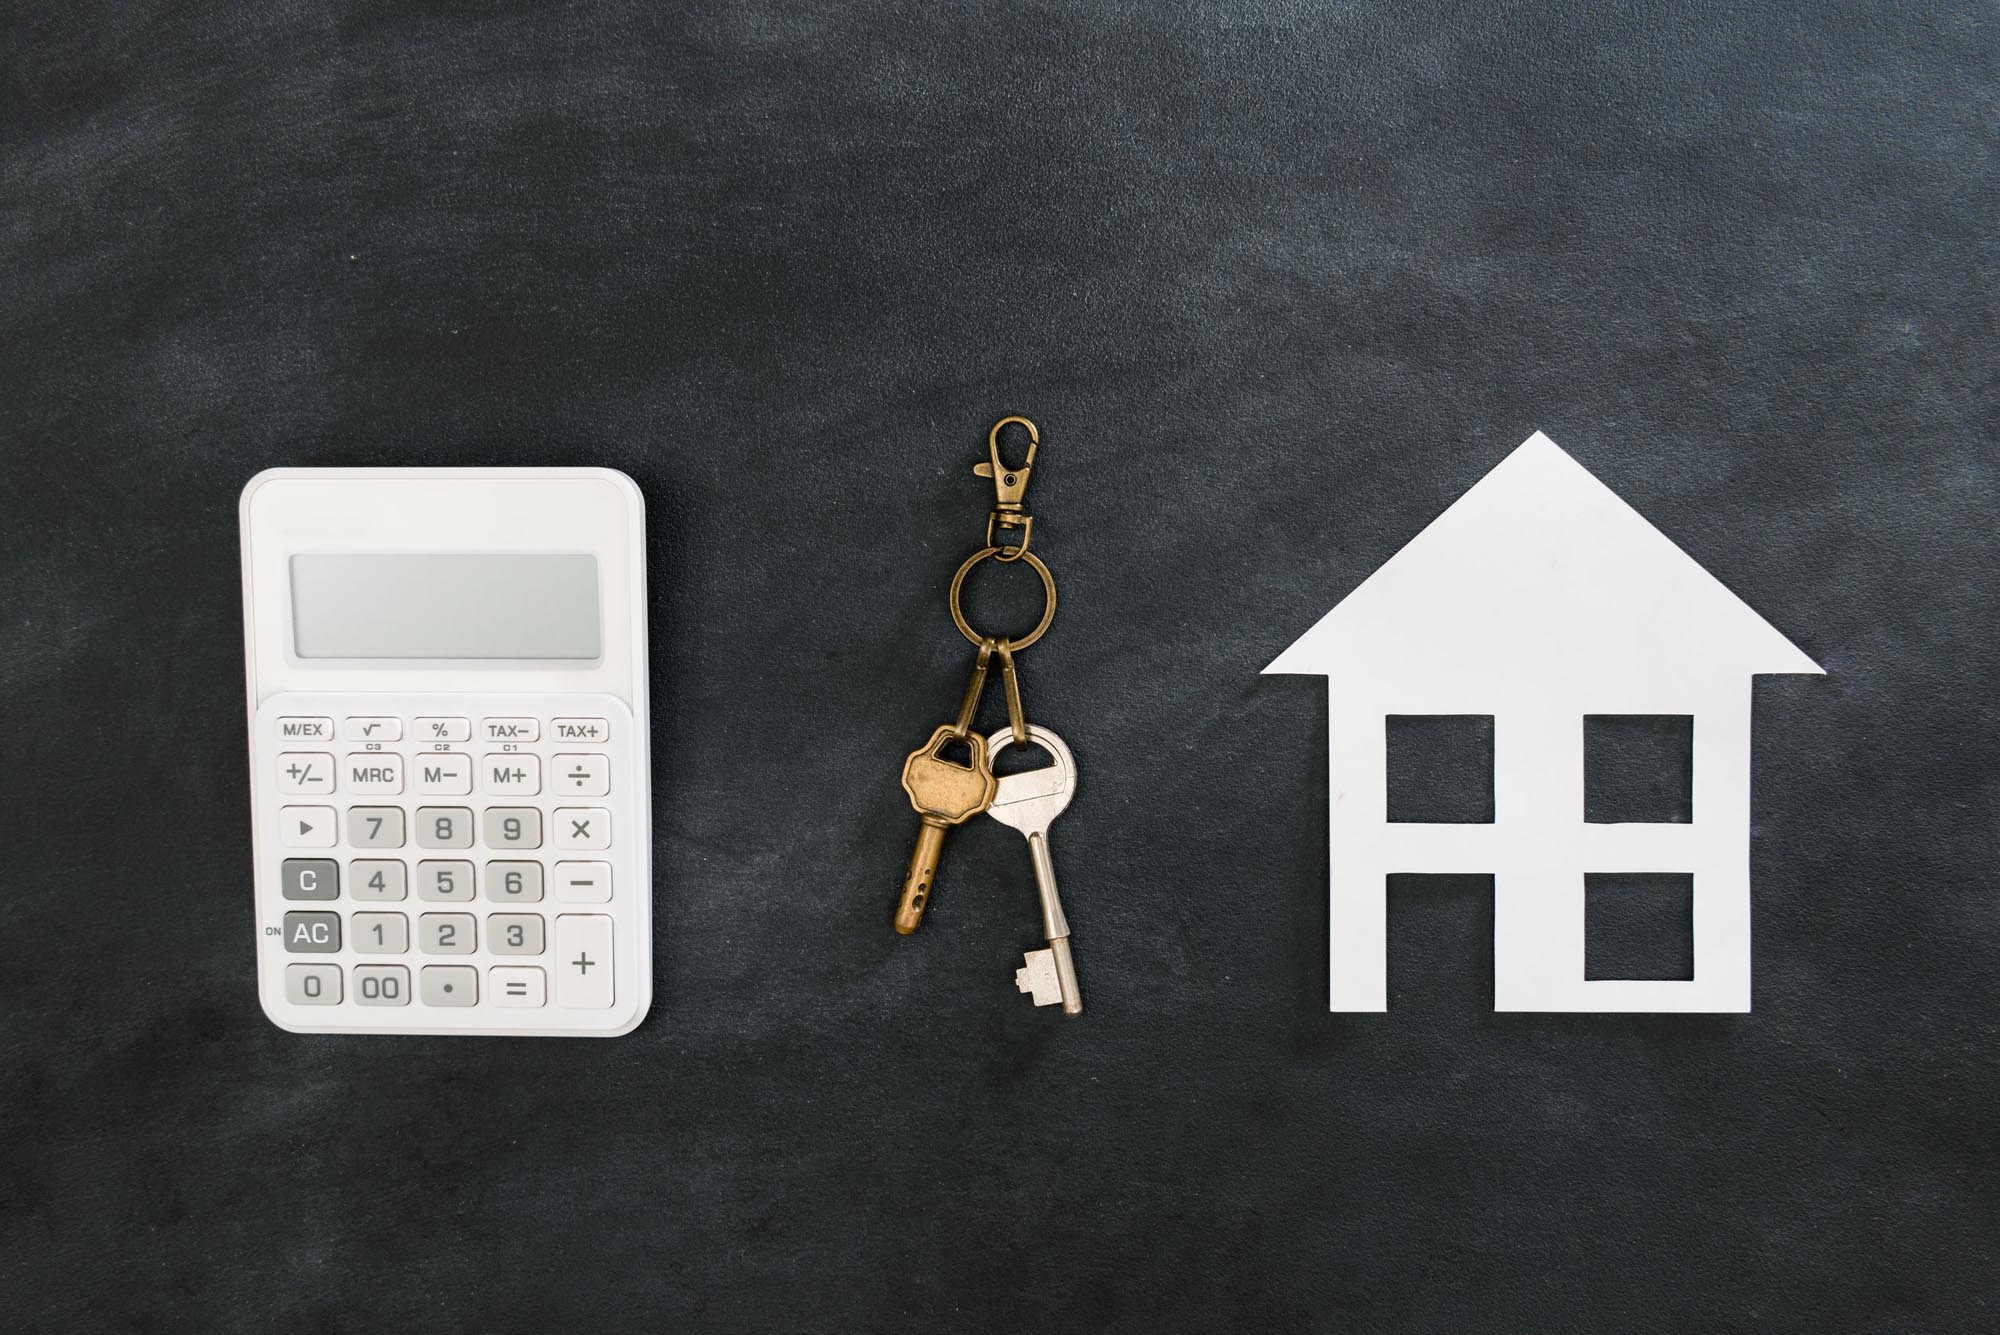 Image of a calculator and house with key